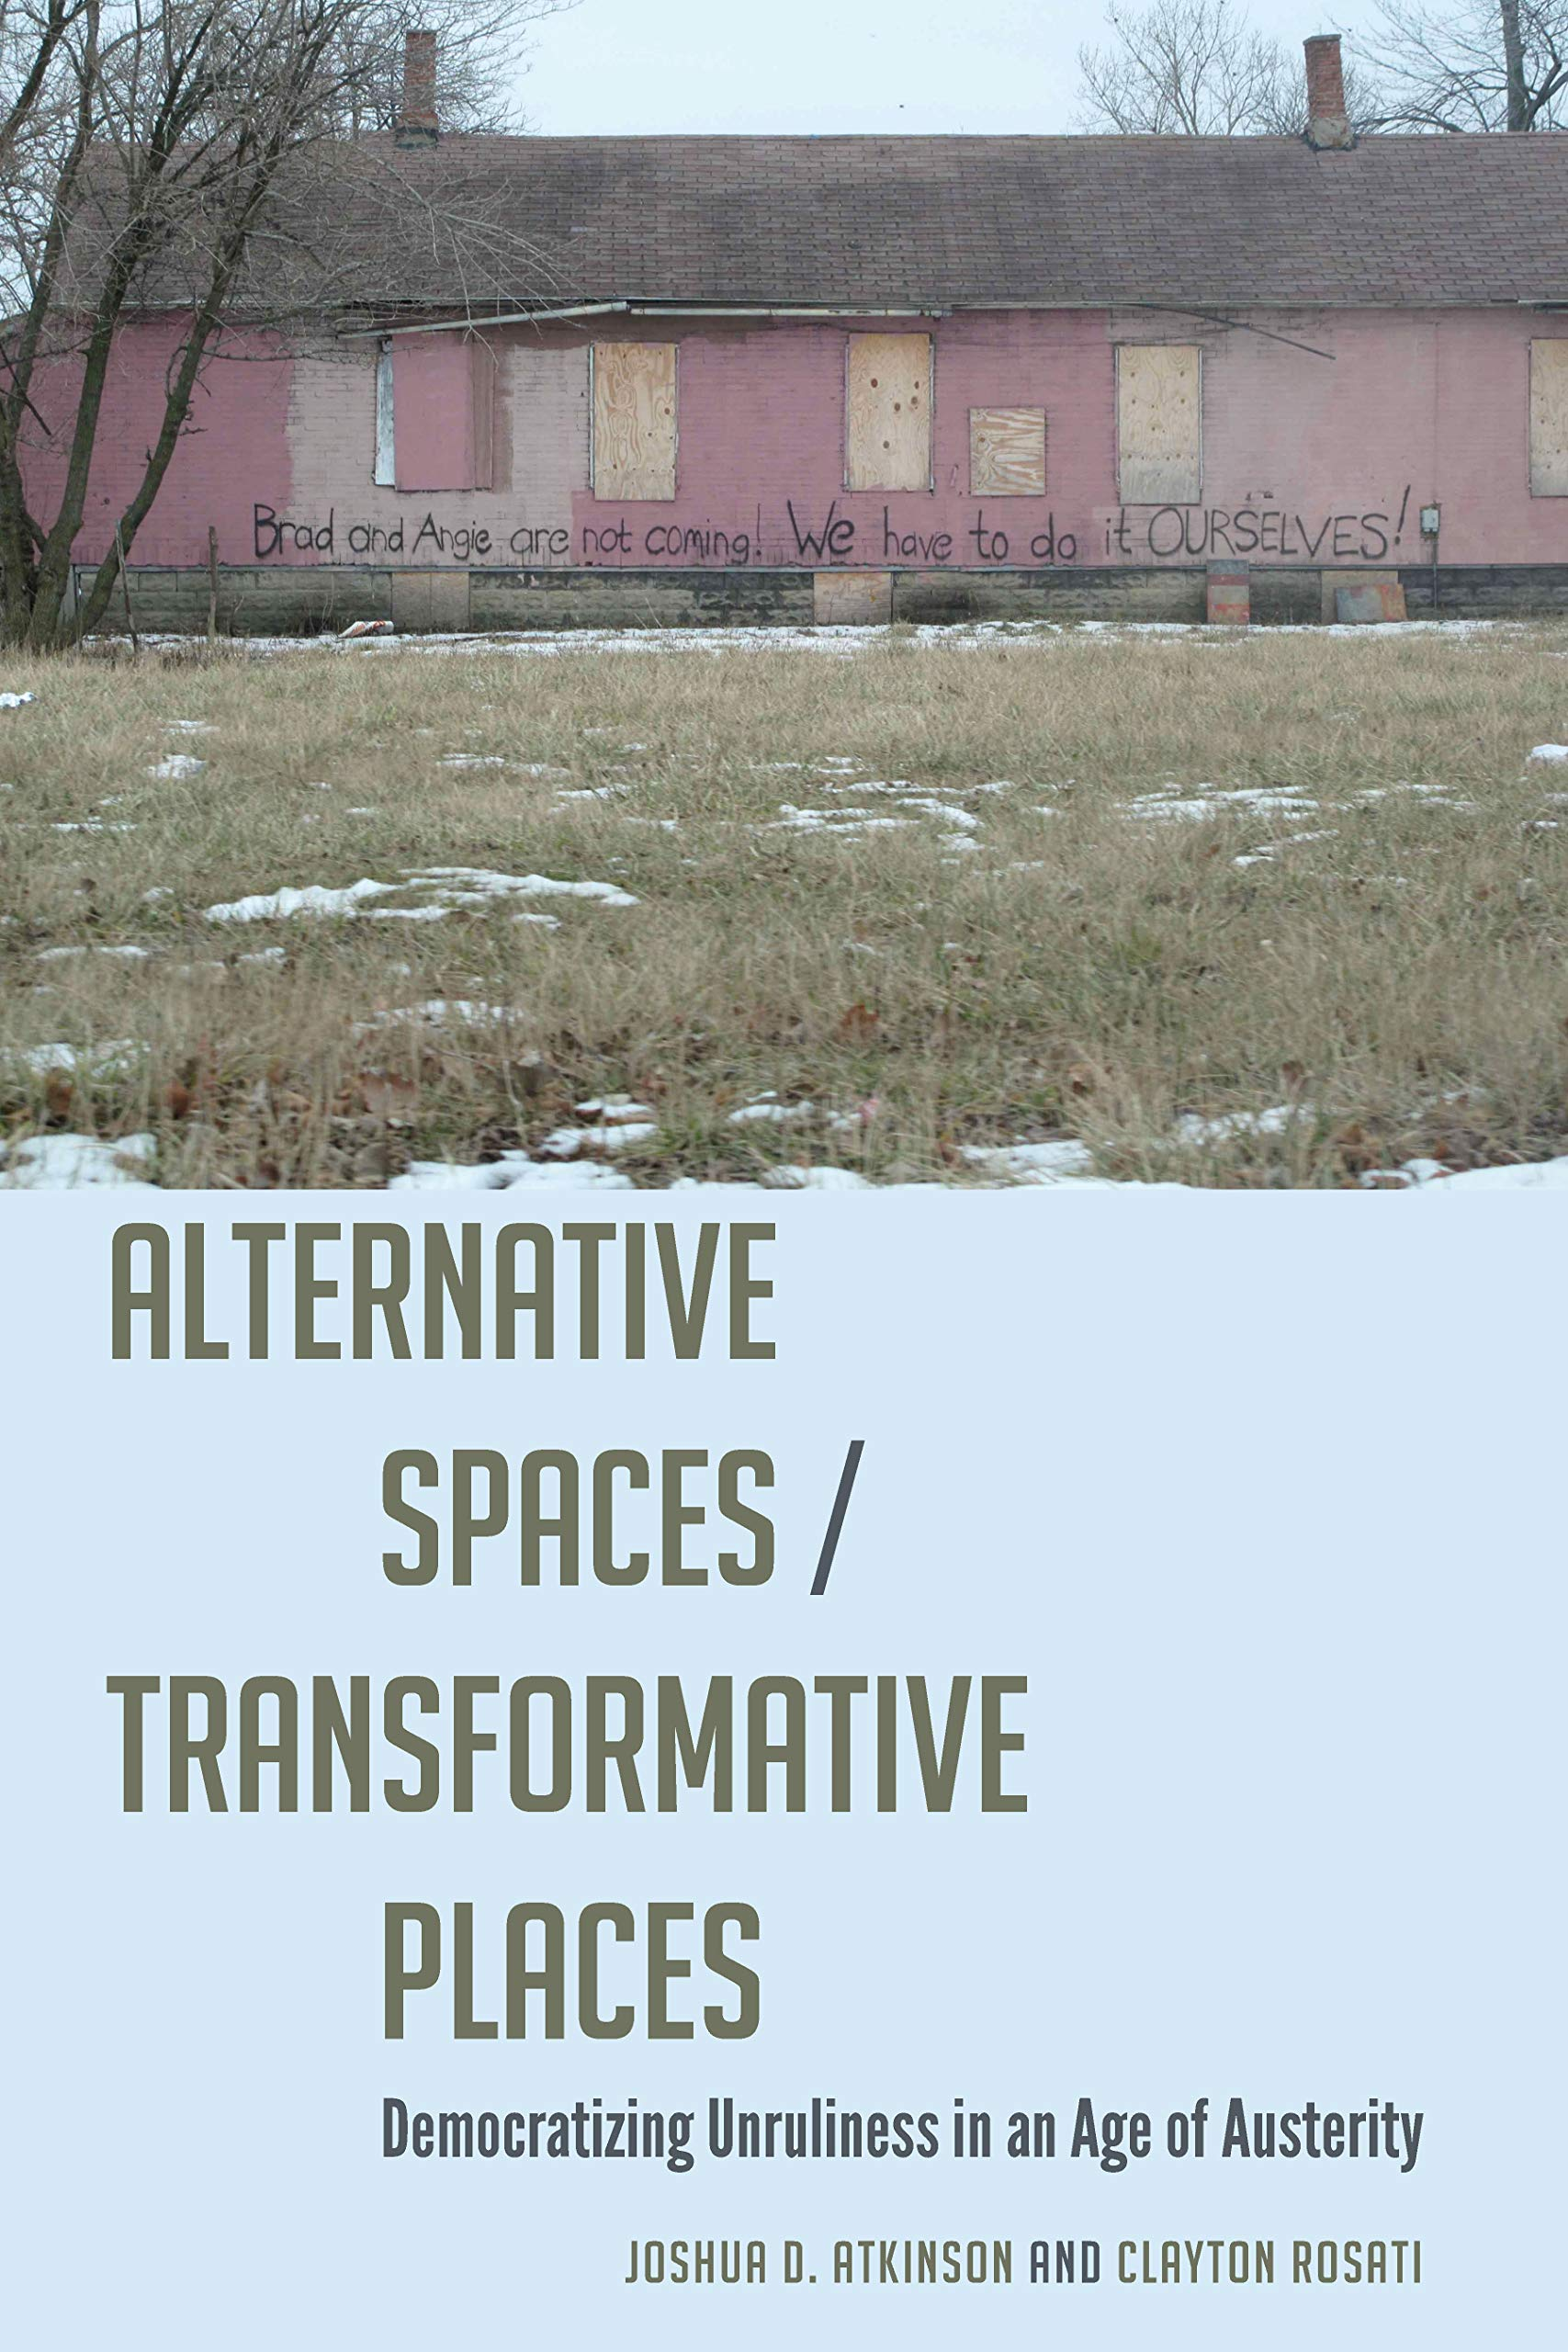 Alternative Spaces/Transformative Places: Democratizing Unruliness in an Age of Austerity (Frontiers in Political Communication Book 41)